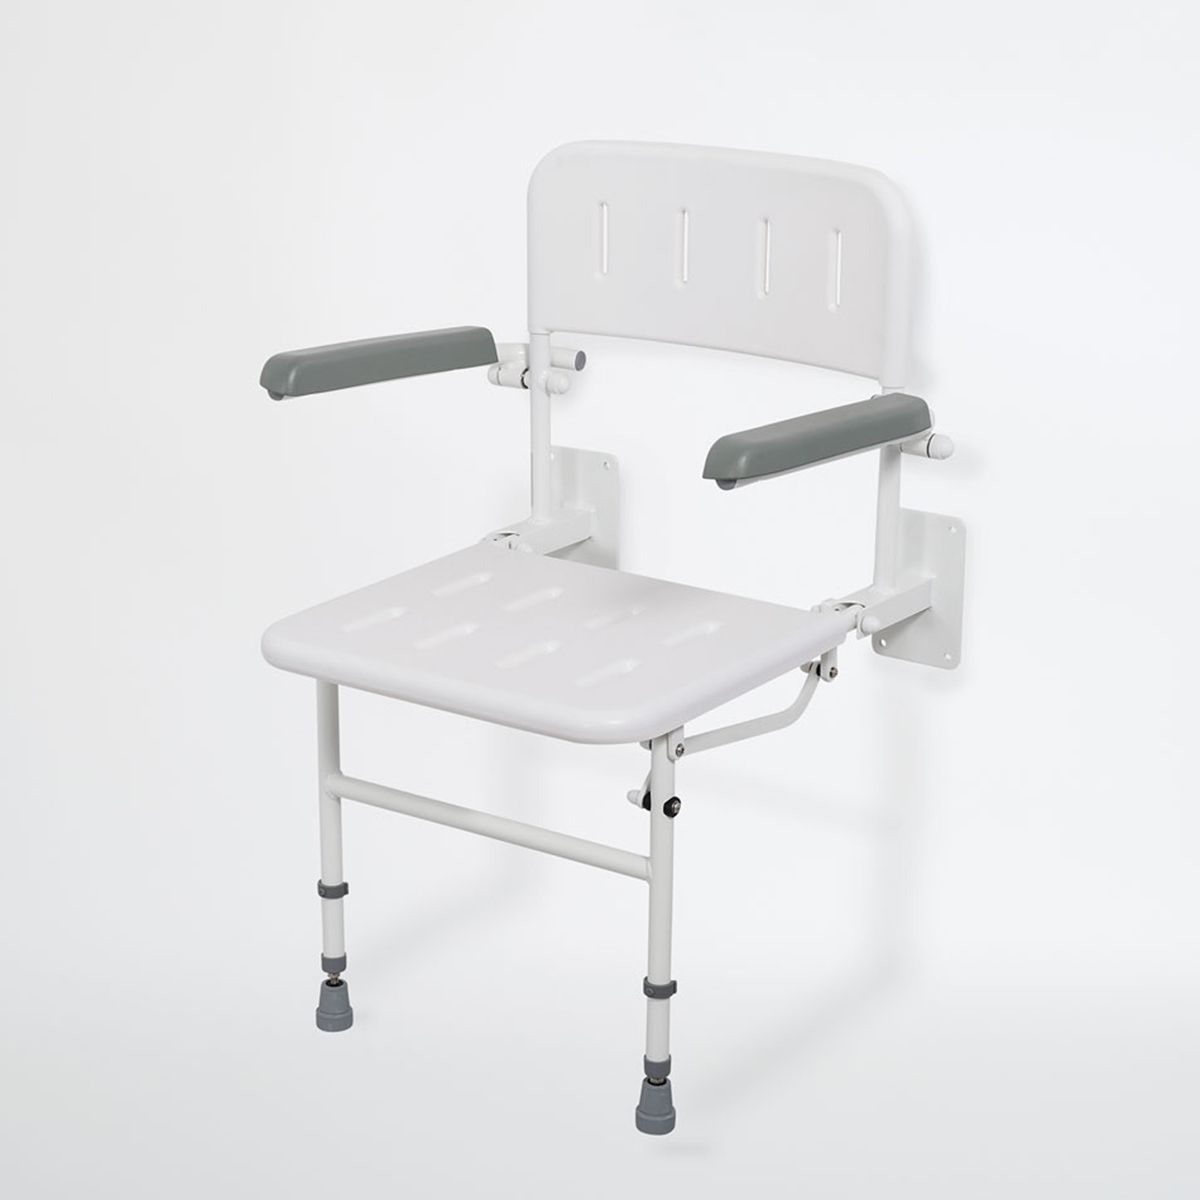 Nymas Wall Mounted White Shower Seat with Arms & Back Support